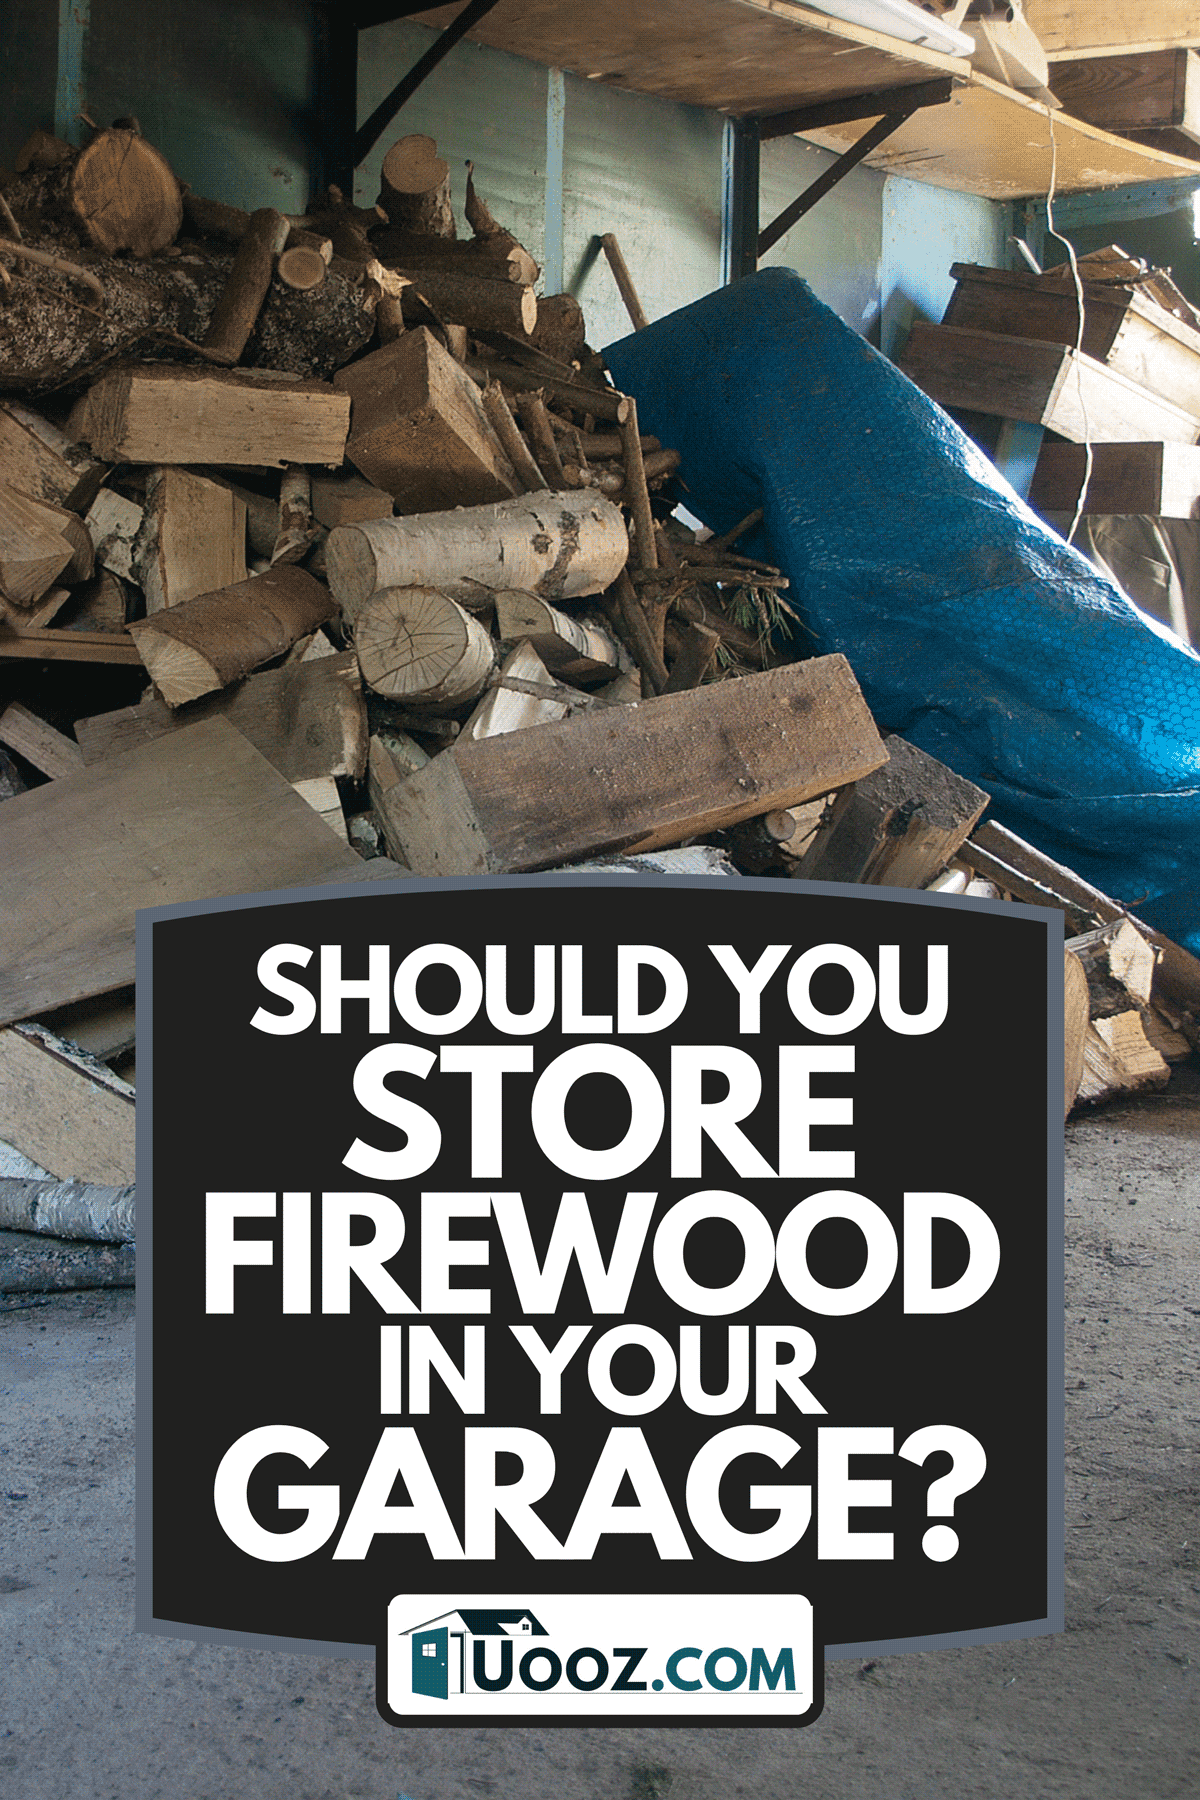 A pile of firewood and other household stuff in a garage, Should You Store Firewood In Your Garage?